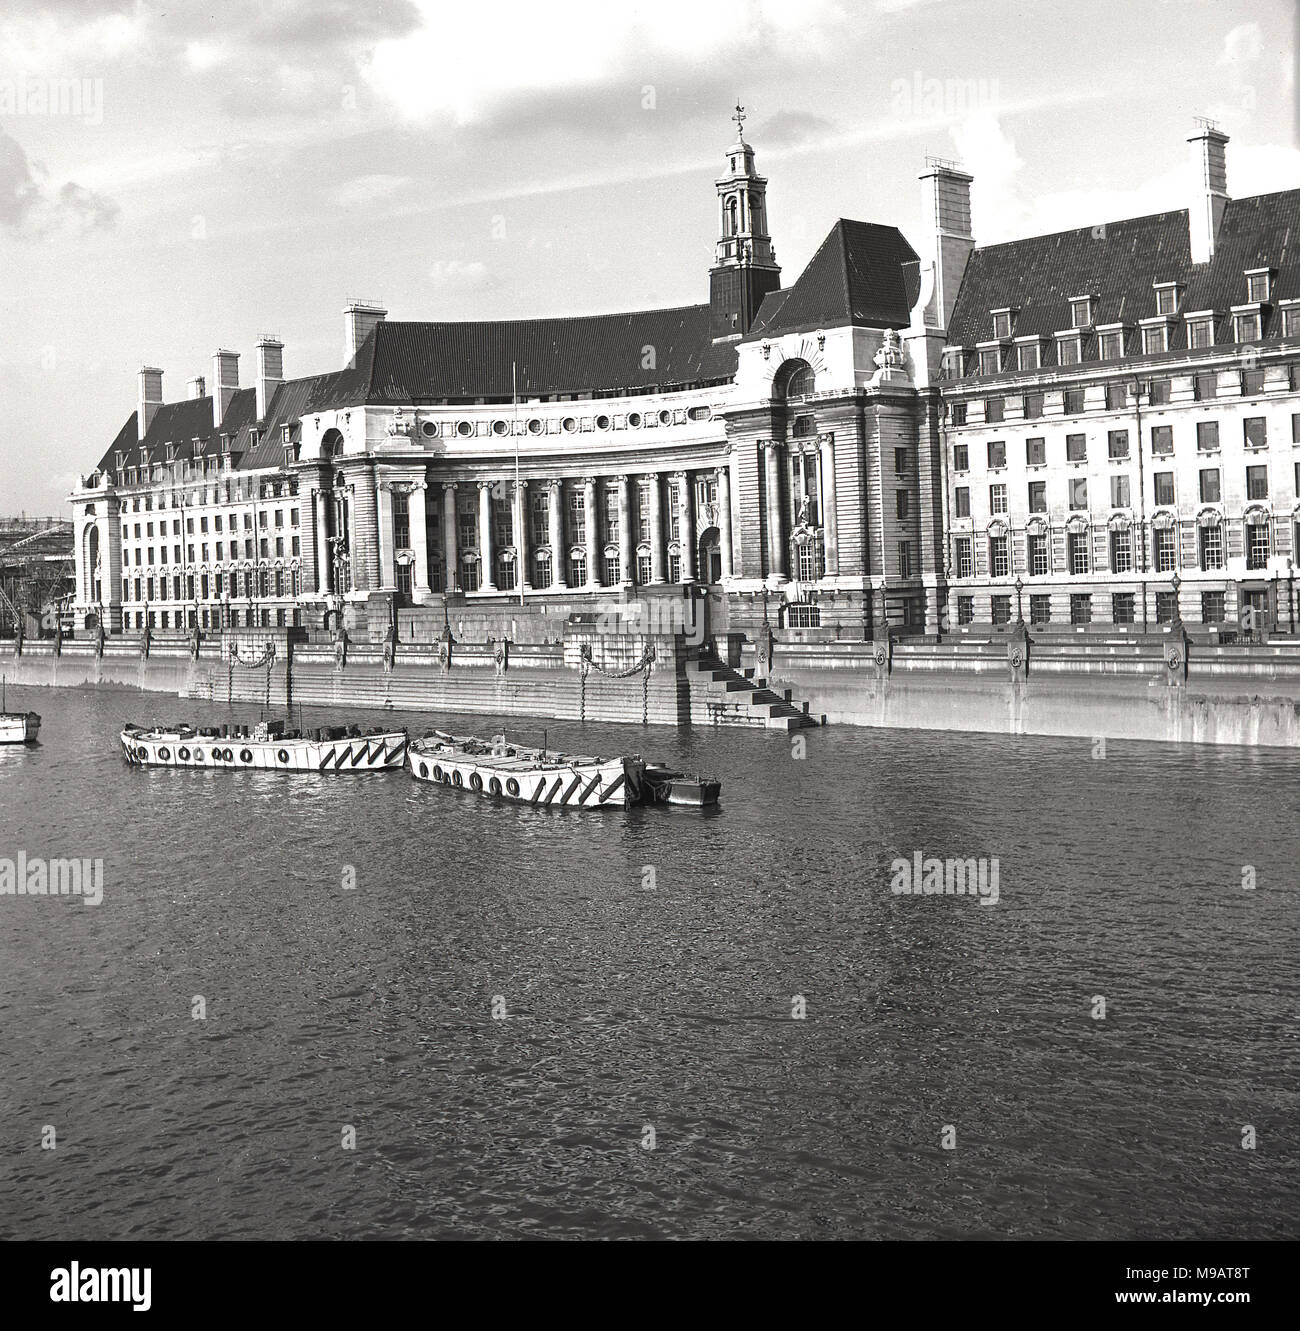 1950s, historical view of County Hall, London, England.This large grand building, built in an Edwardian Baroque style in Portland stone on the South Bank of the of the River Thames, was the headquarters of local government in London, firstly the LCC and then the Greater London Counicl (GLC). - Stock Image